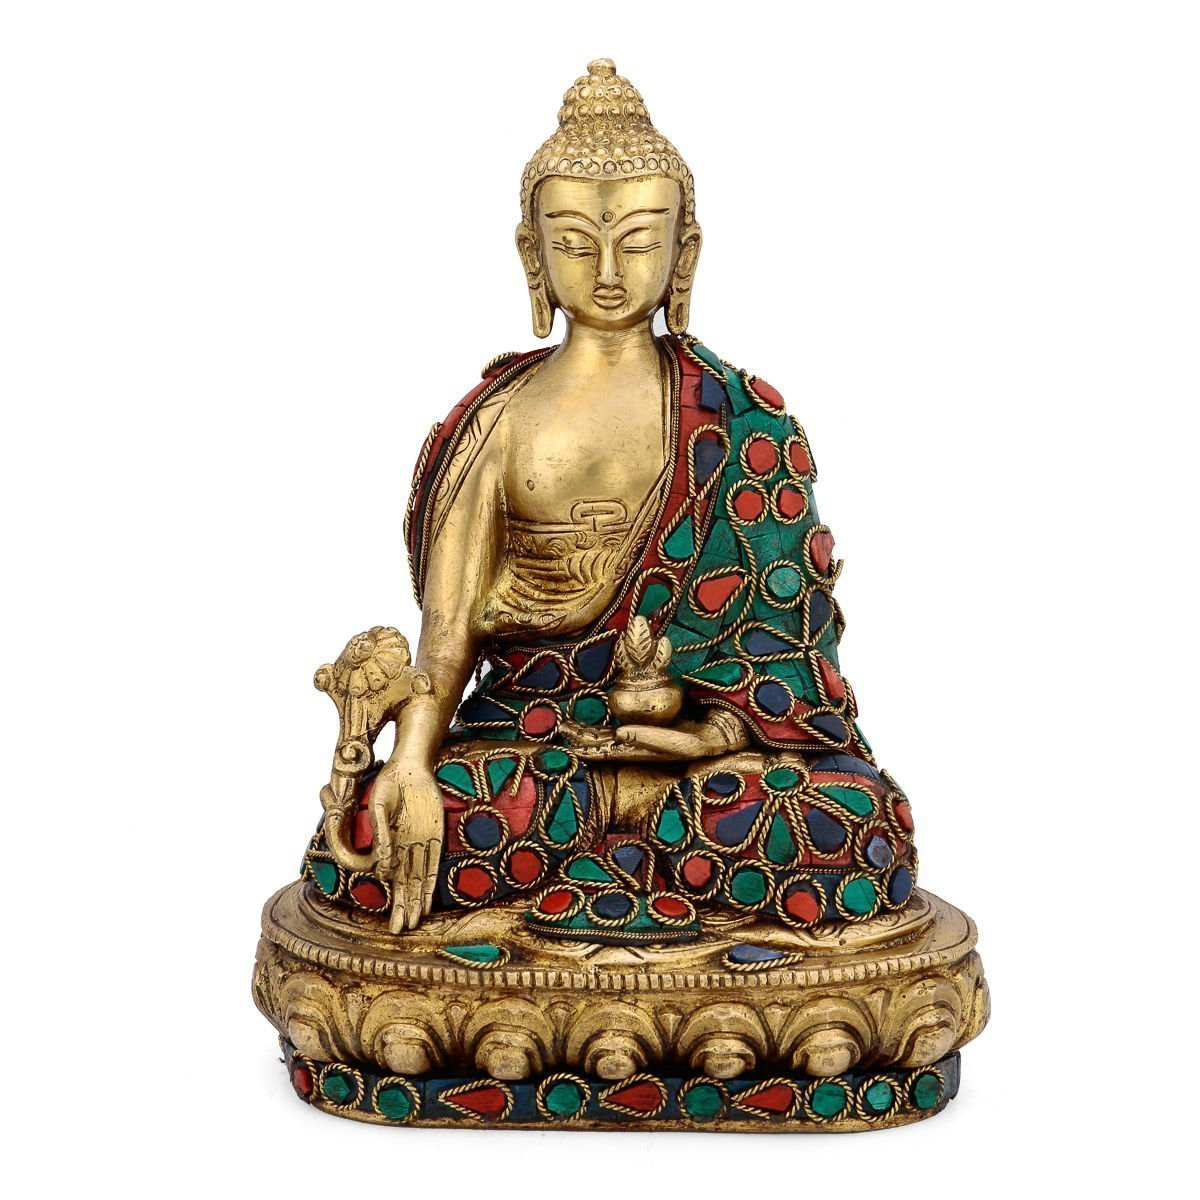 AapnoCraft Thai Medicine Buddha Meditating Statue Of Buddha Magnificent Work Table Decor & Wedding Gifts by AapnoCraft